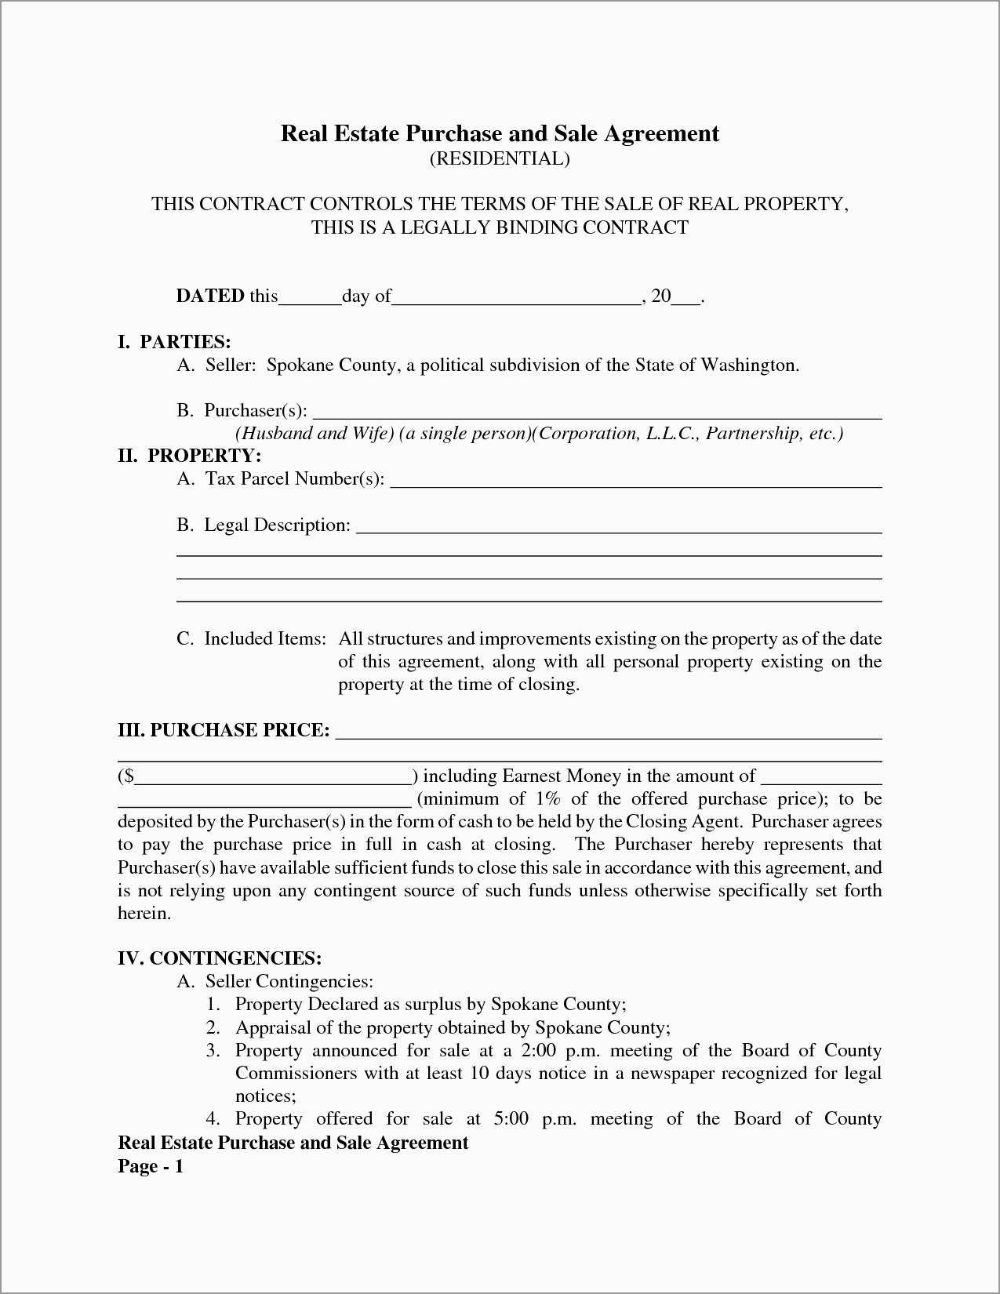 Fresh Purchase Agreement Real Estate Template Free Best Of Template For Free Simple Real Estate Pu Real Estate Contract Real Estate Templates Contract Template